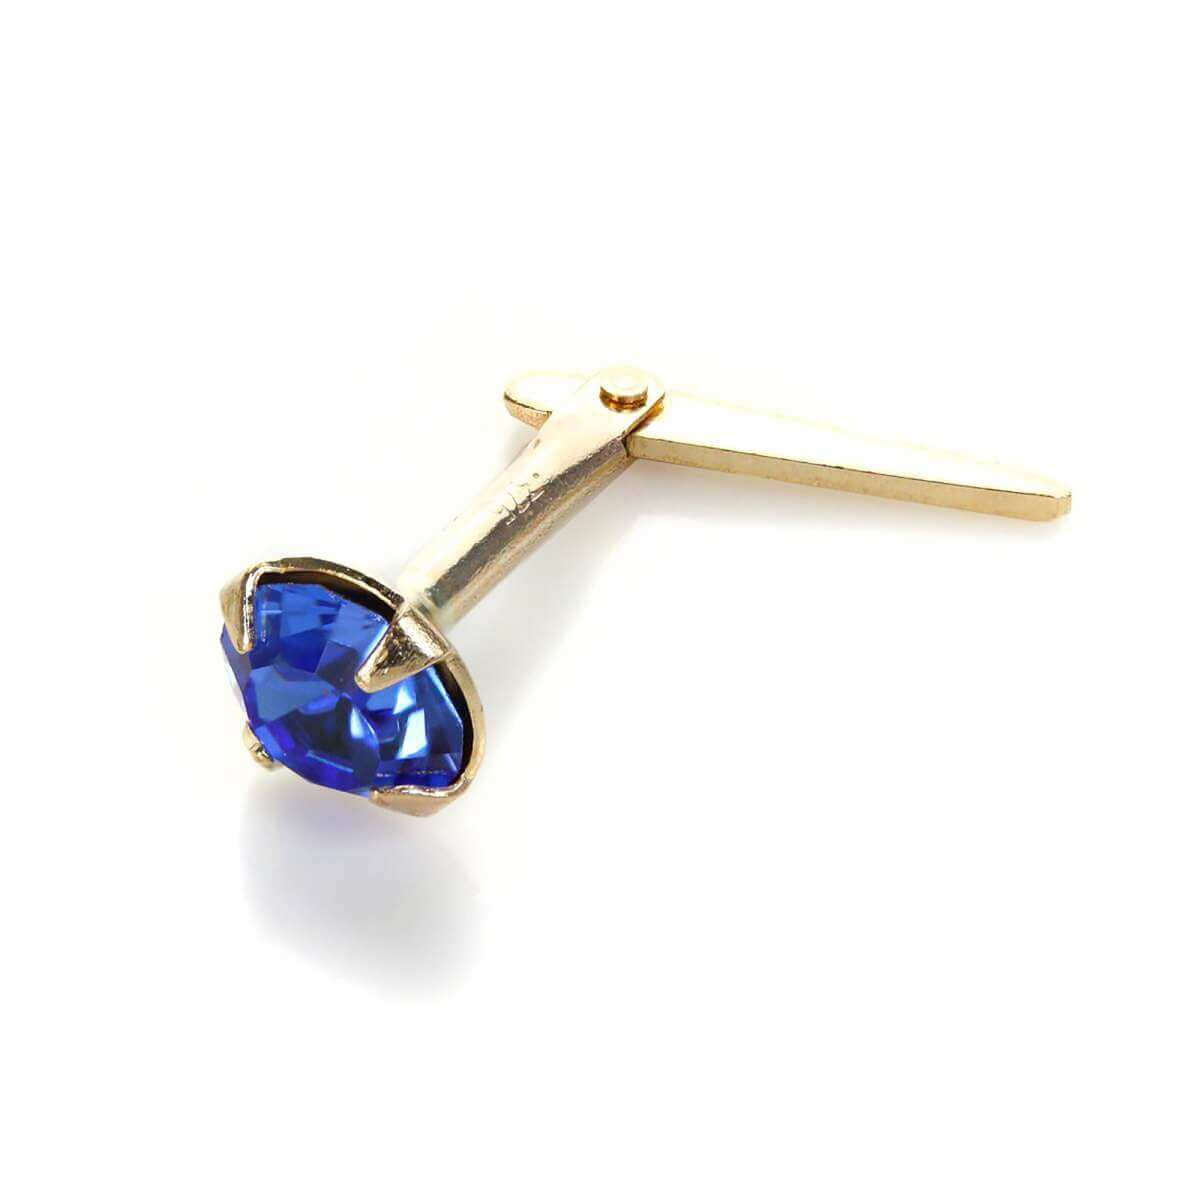 Andralok 9ct Yellow Gold Sapphire Crystal 3.5mm Nose Stud